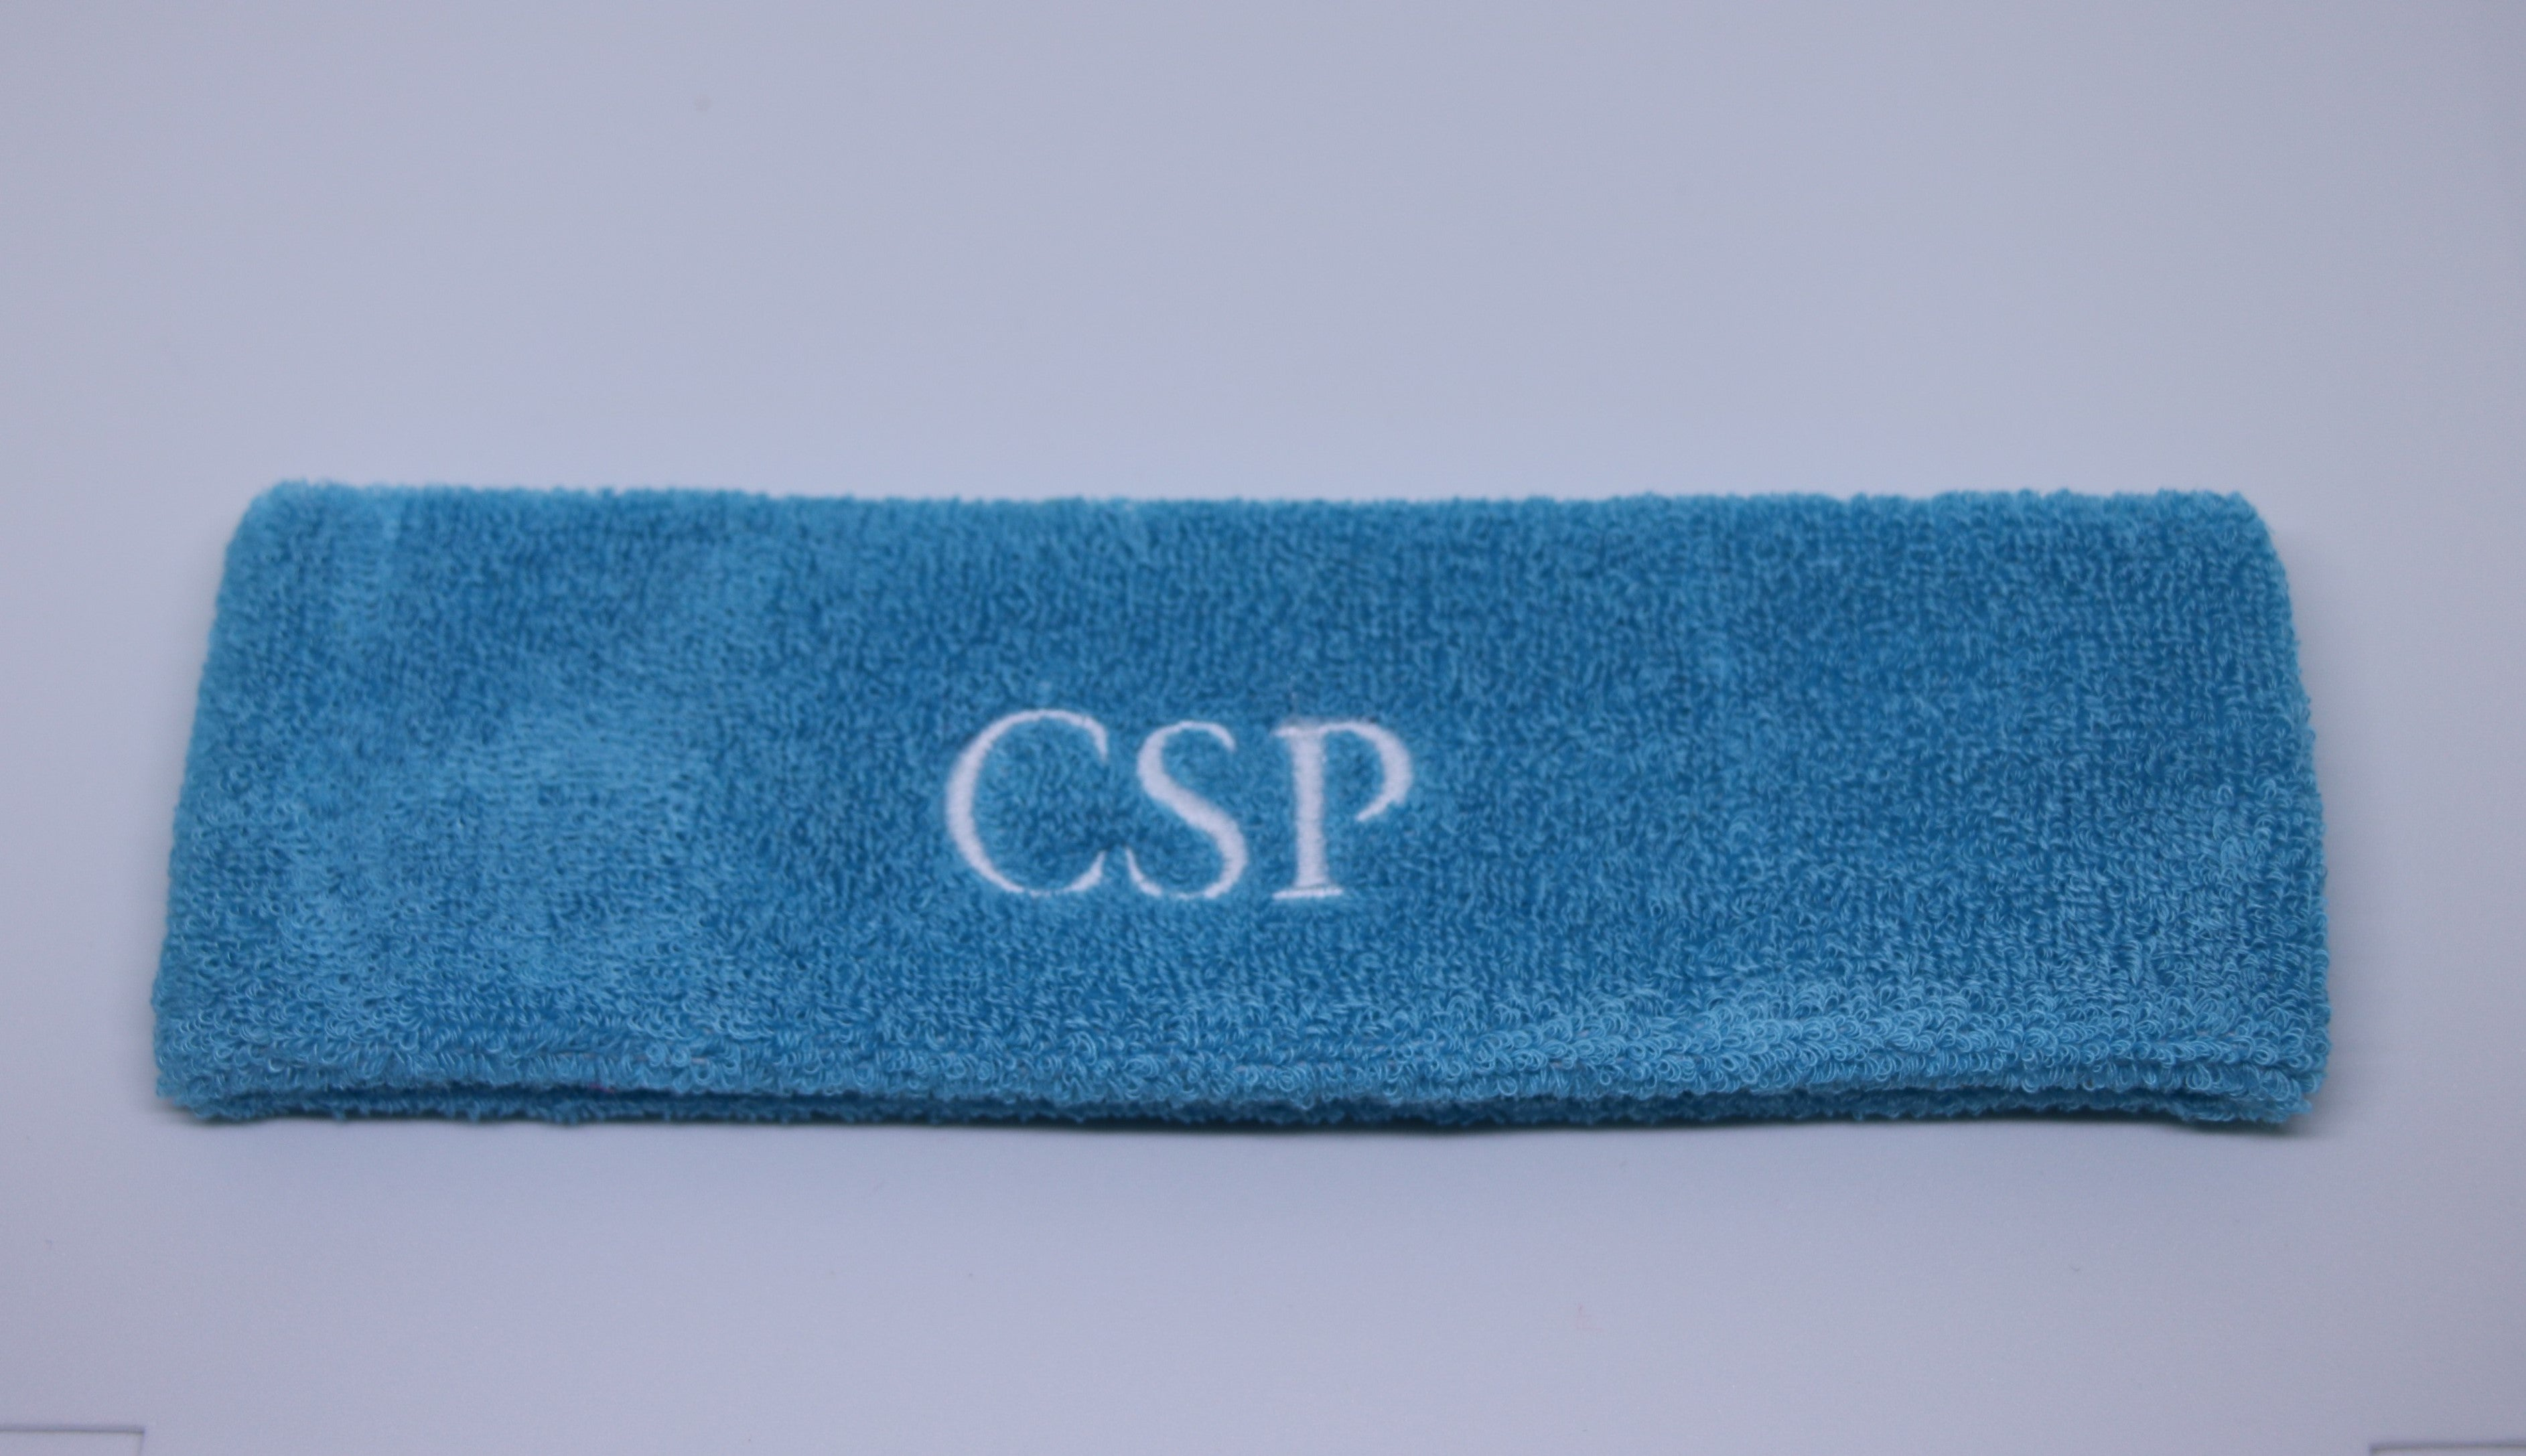 CSP - Sweatband (blue)